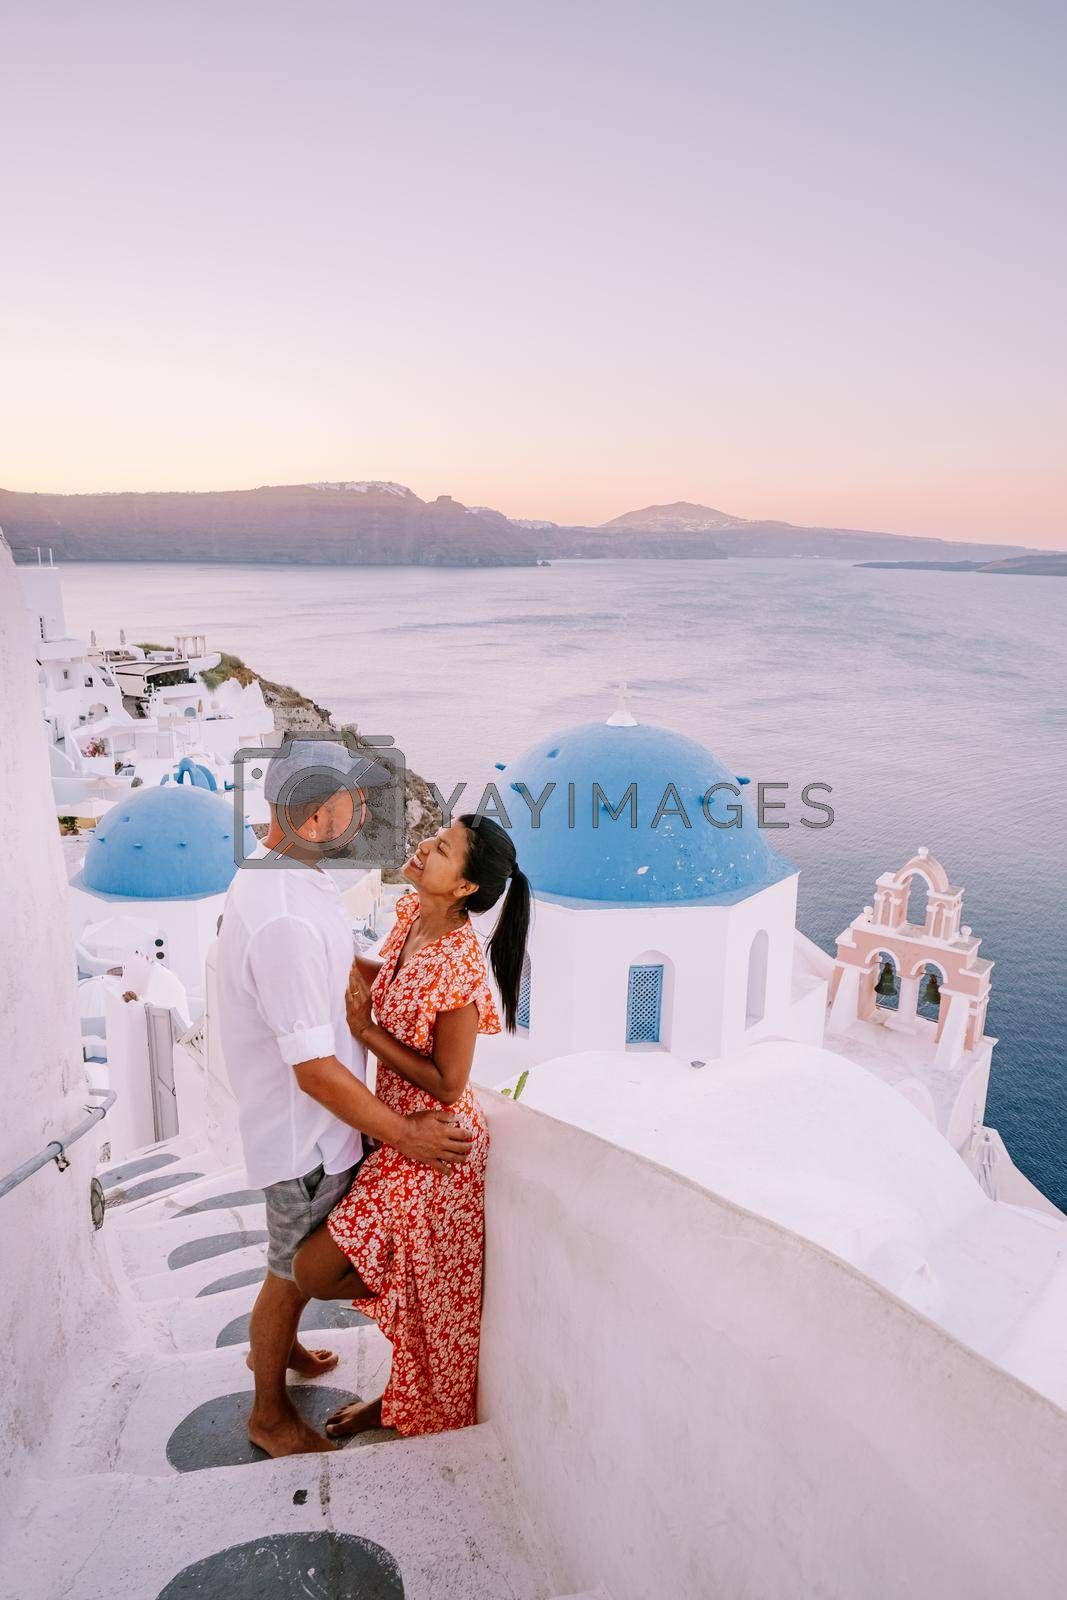 Santorini Greece, young couple on luxury vacation at the Island of Santorini watching sunrise by the blue dome church and whitewashed village of Oia Santorini Greece . Europe